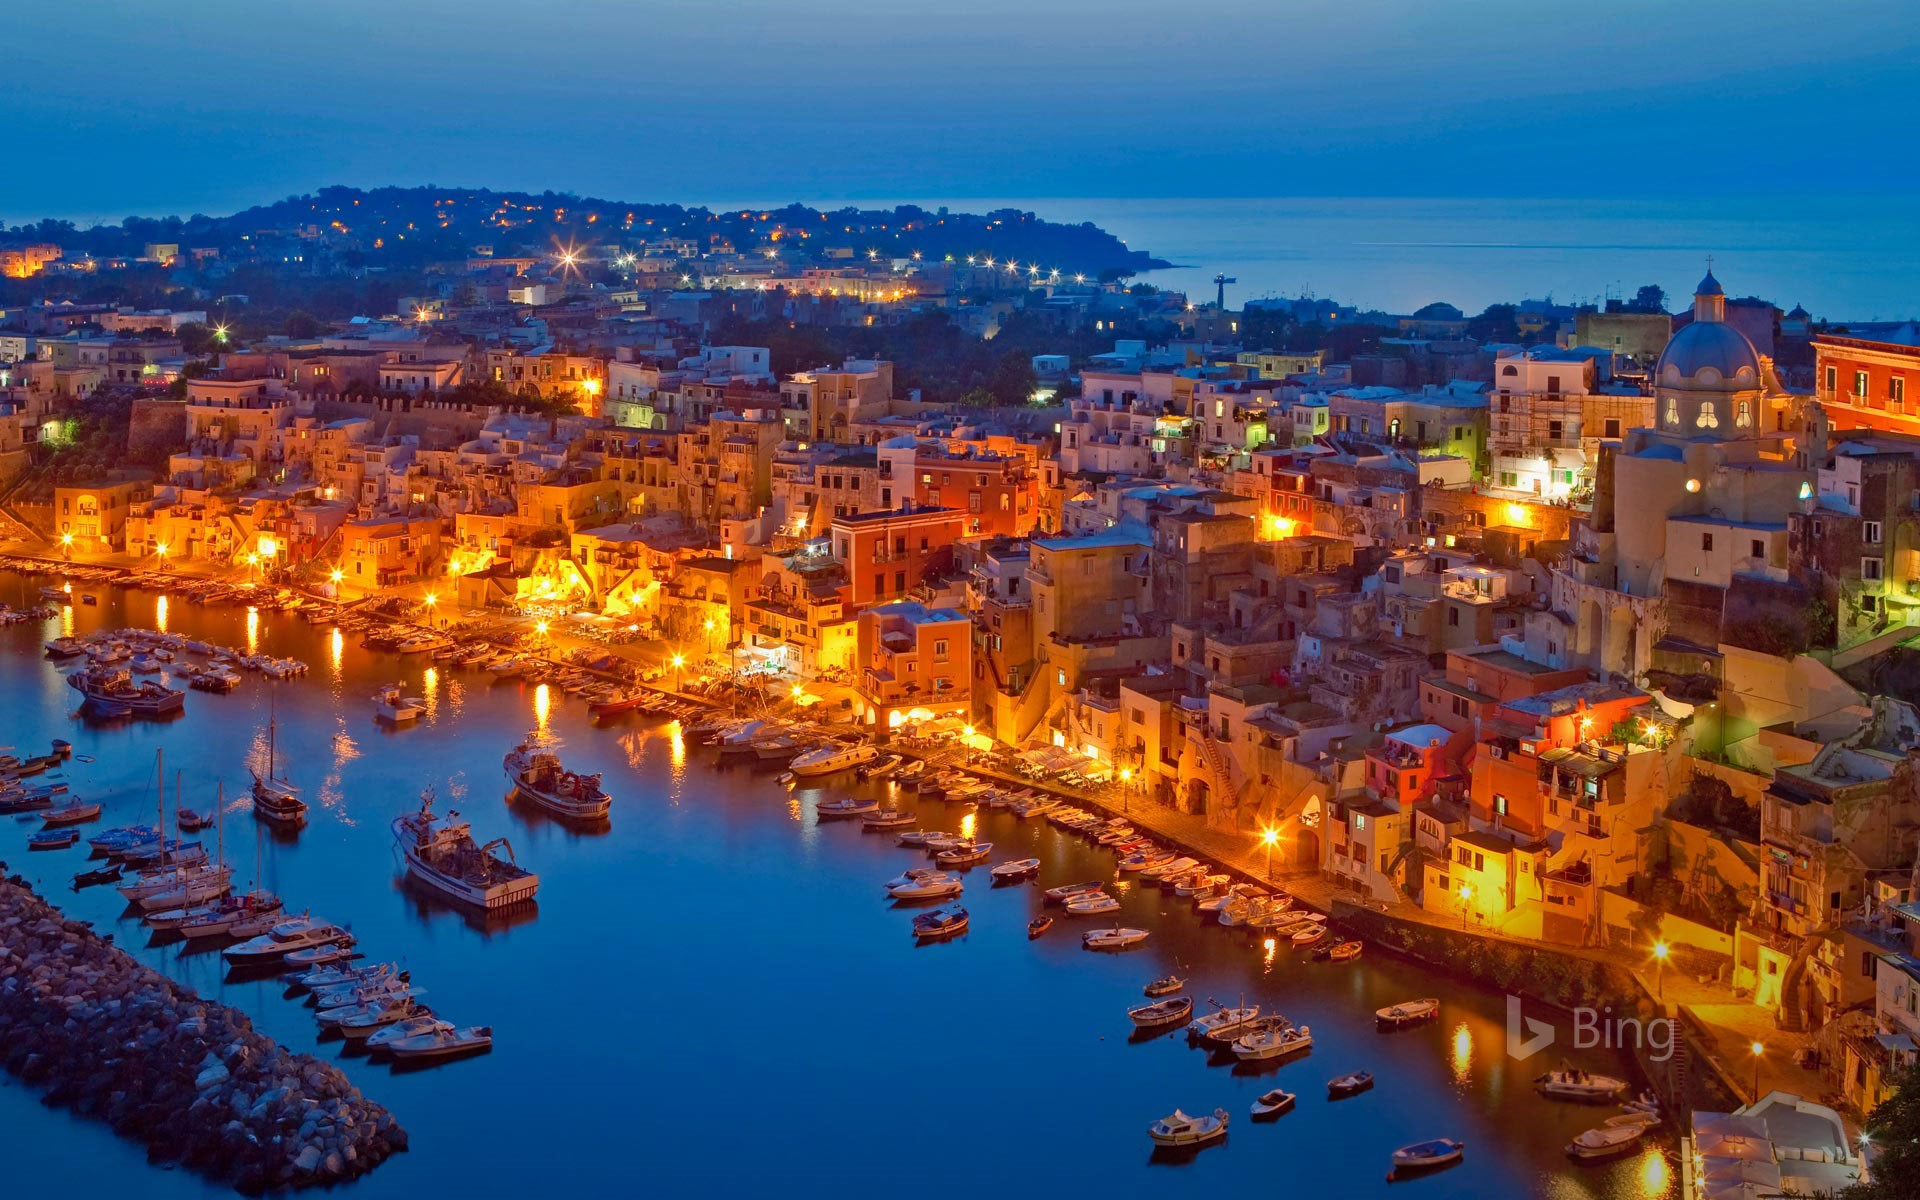 Procida in the Bay of Naples, Italy